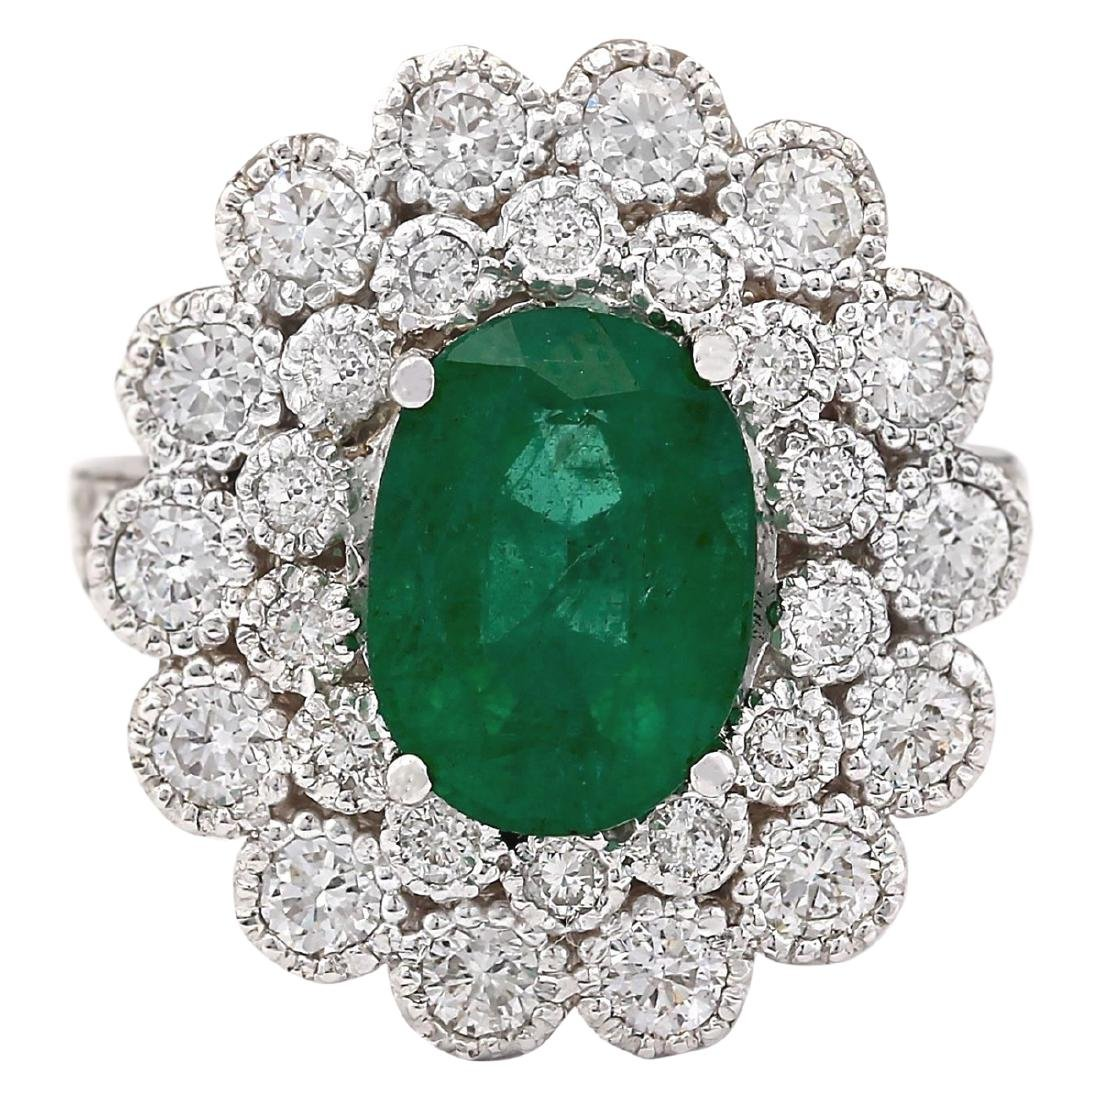 4.43 CTW Natural Emerald And Diamond Ring In 18K White